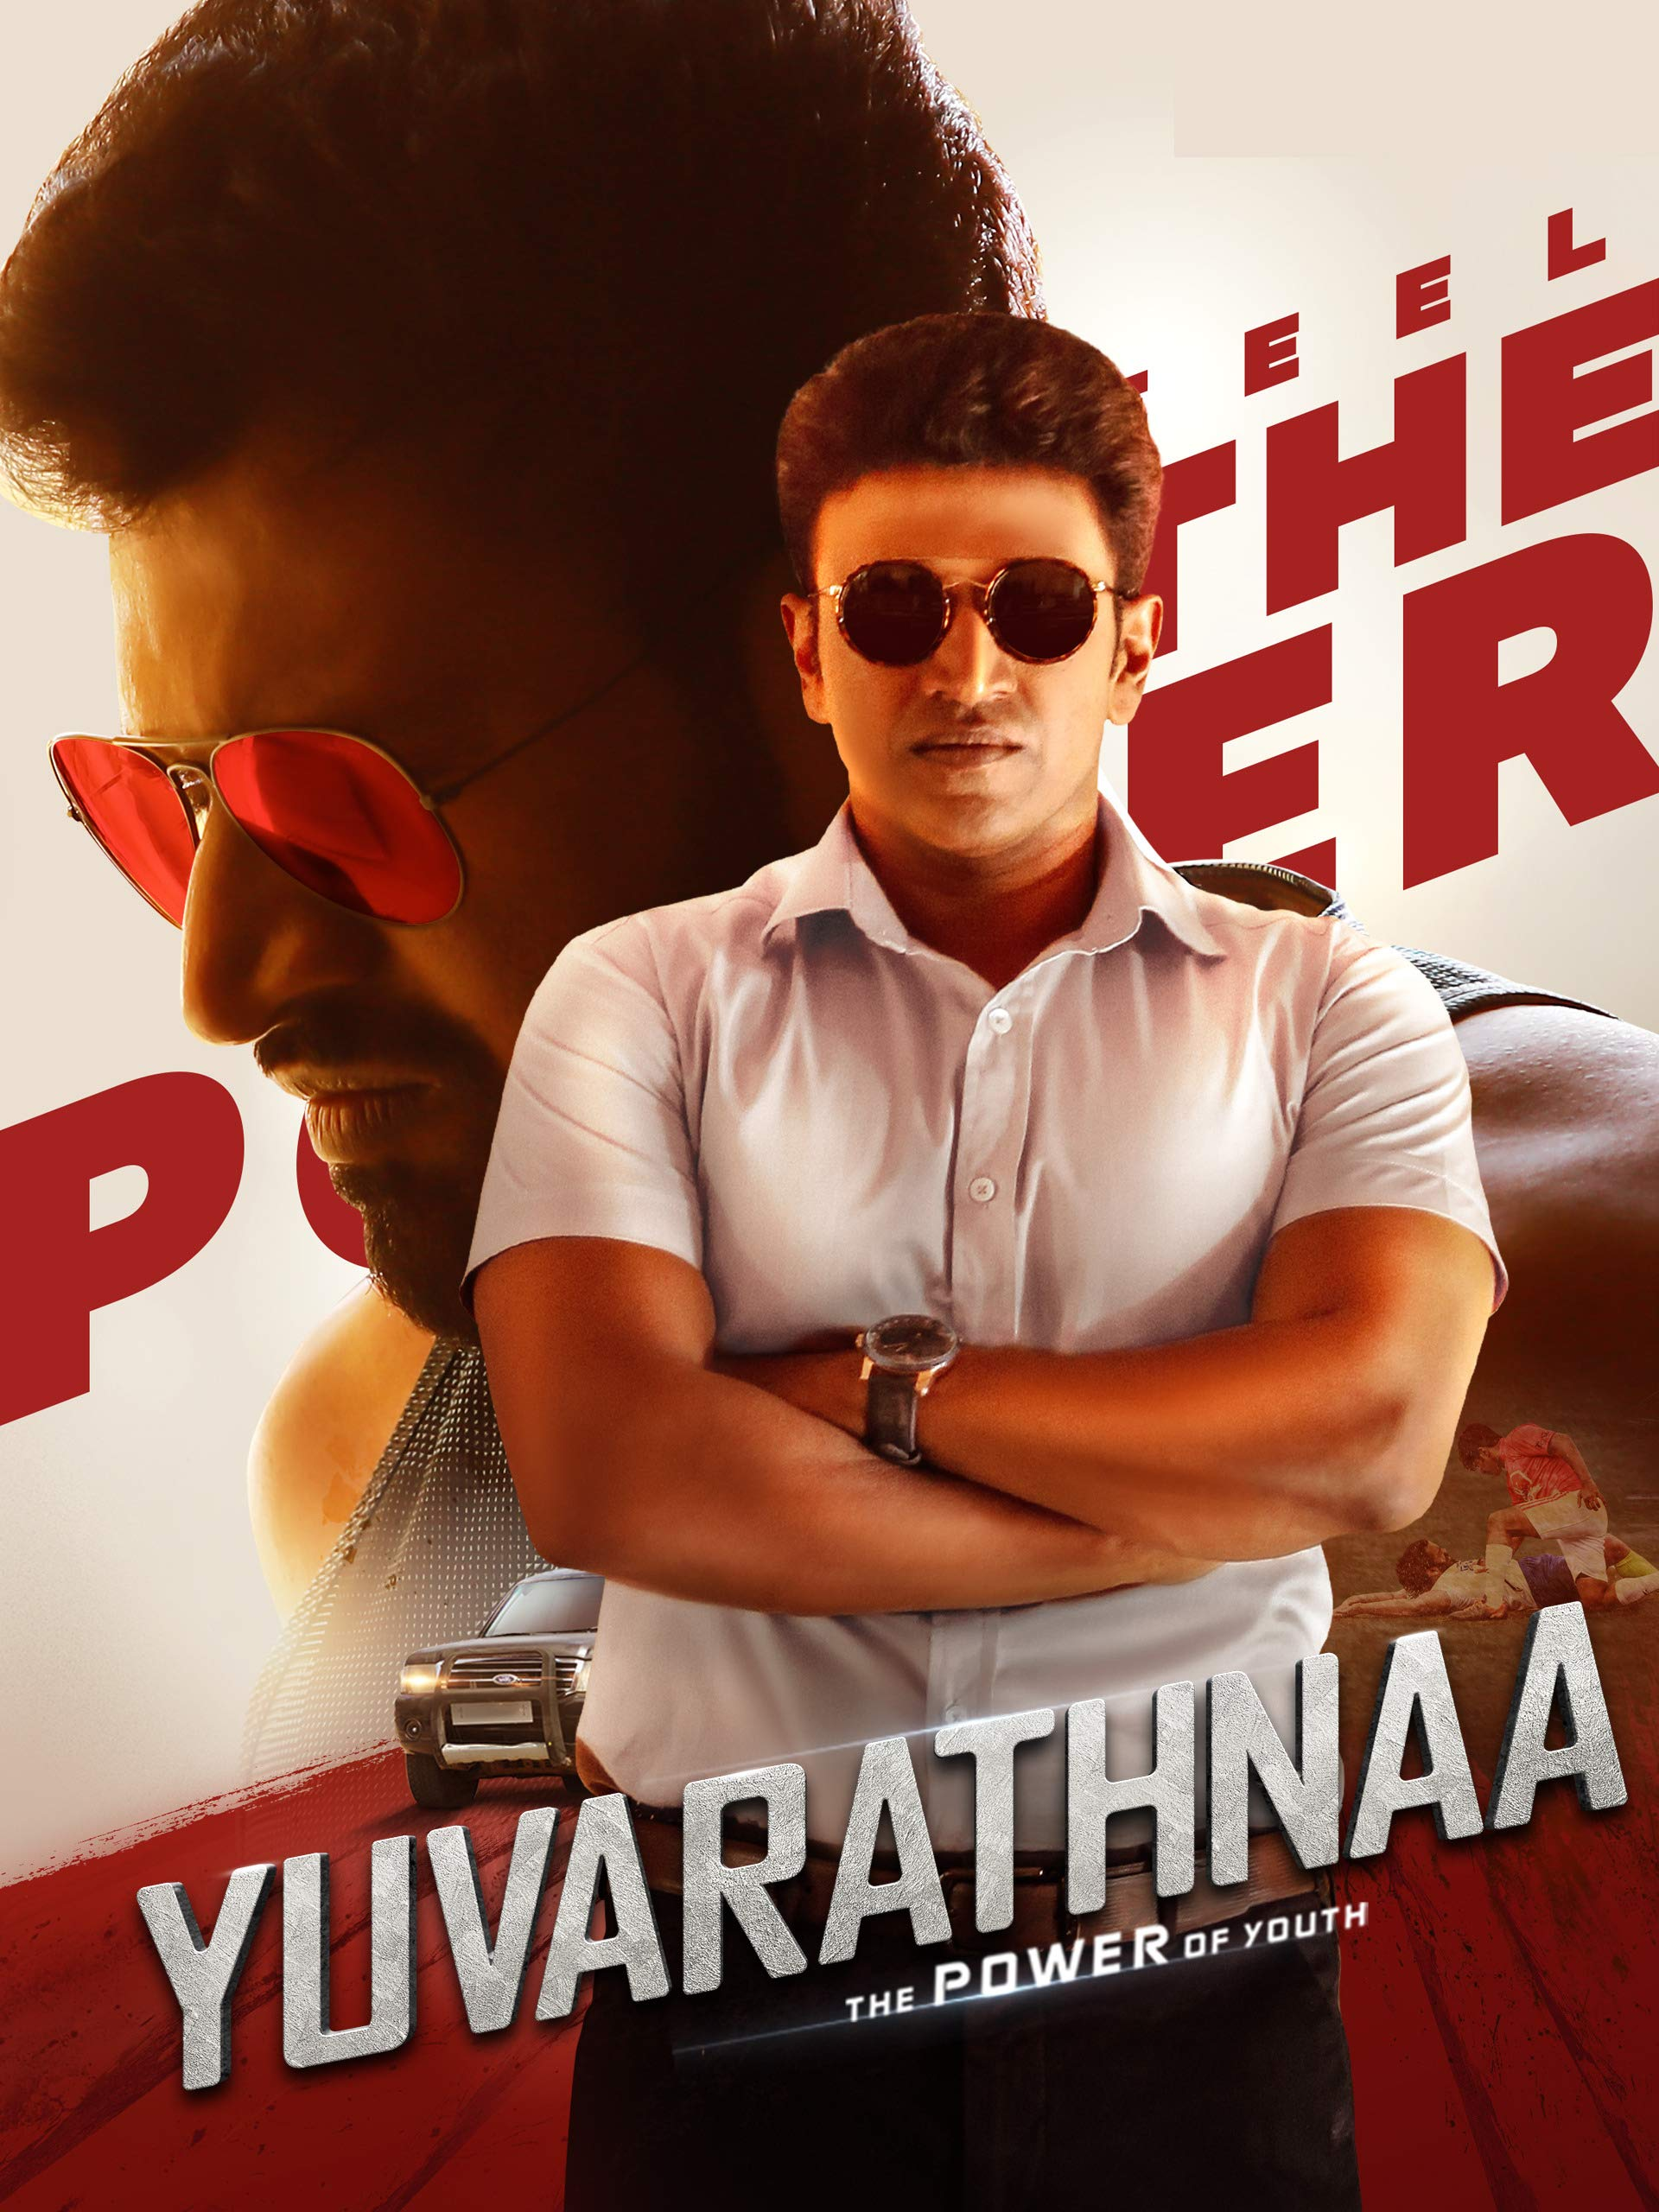 Yuvarathnaa 2021 Hindi Dubbed 380MB HDRip ESub Download